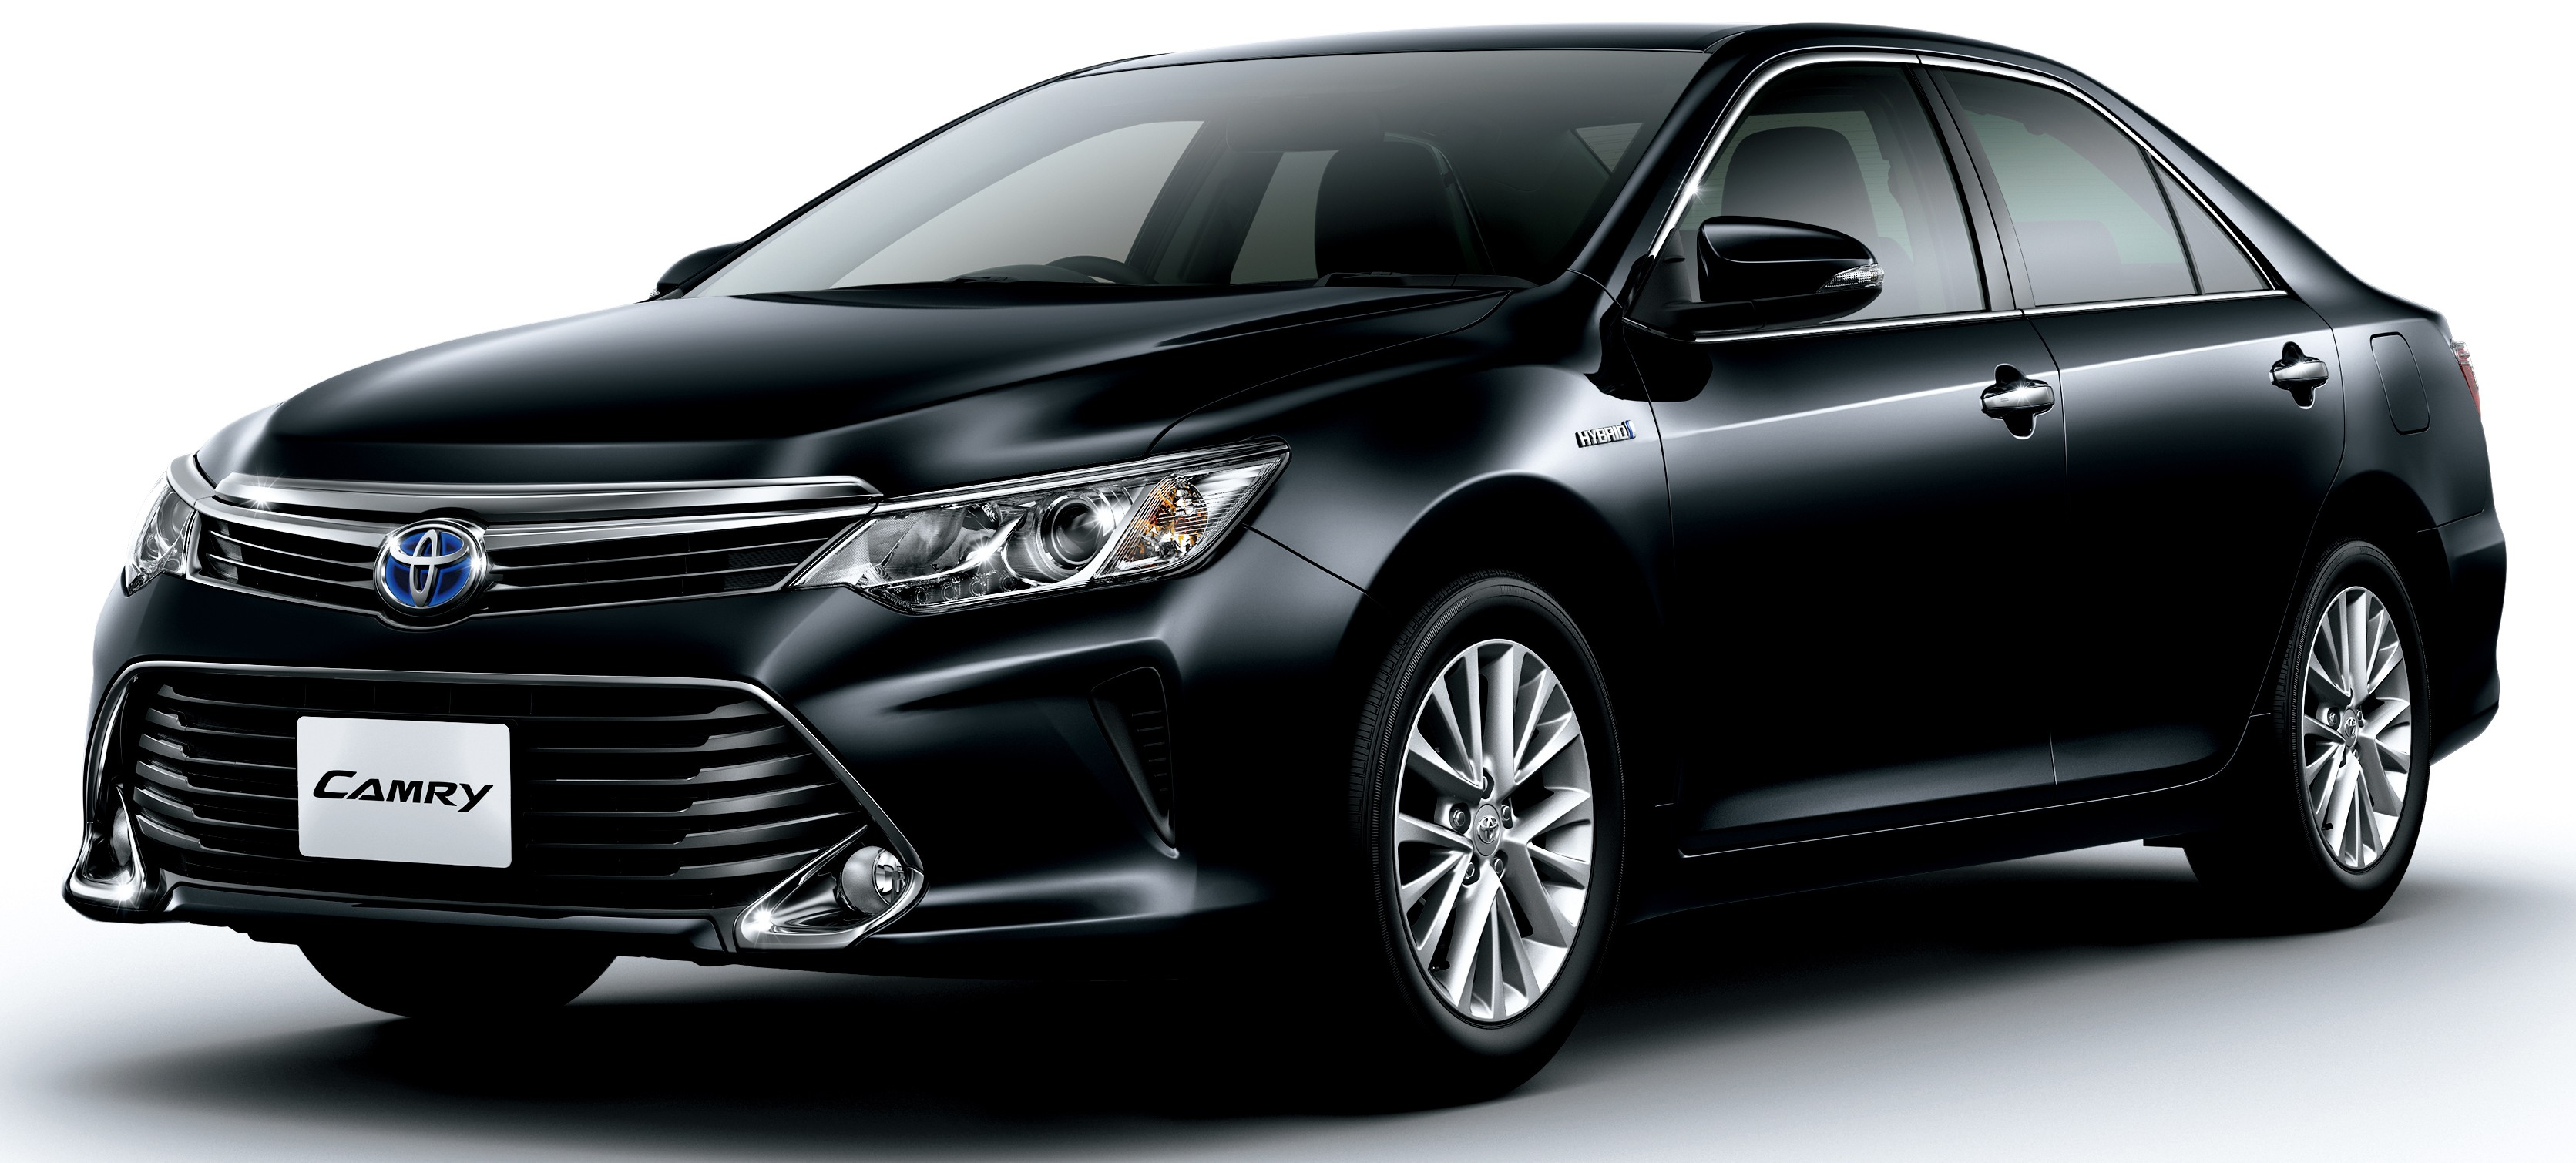 Toyota camry new car price in malaysia 10